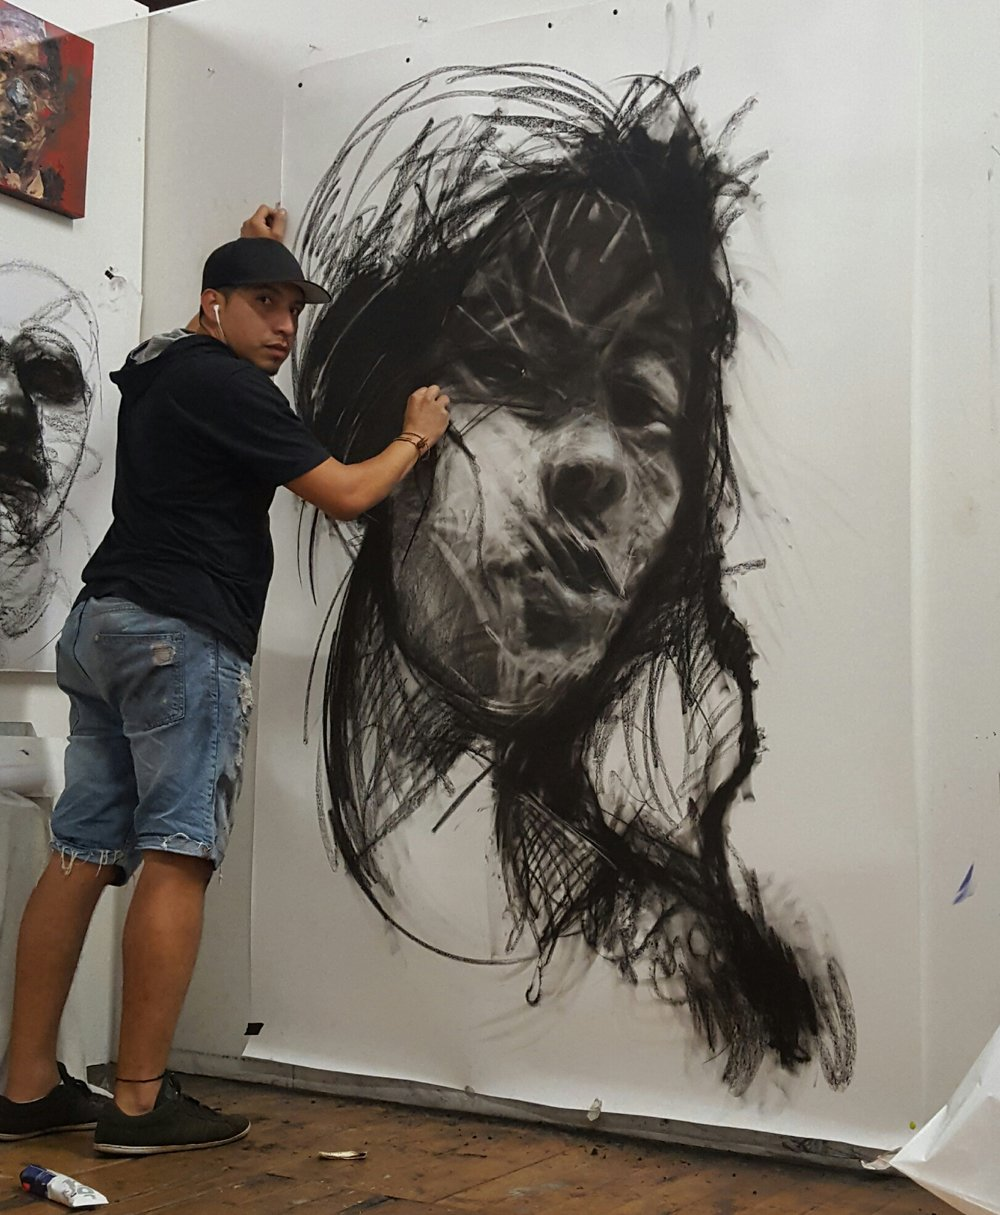 Large scale charcoal drawing in process at Carlos Delgado's art studio in Toronto